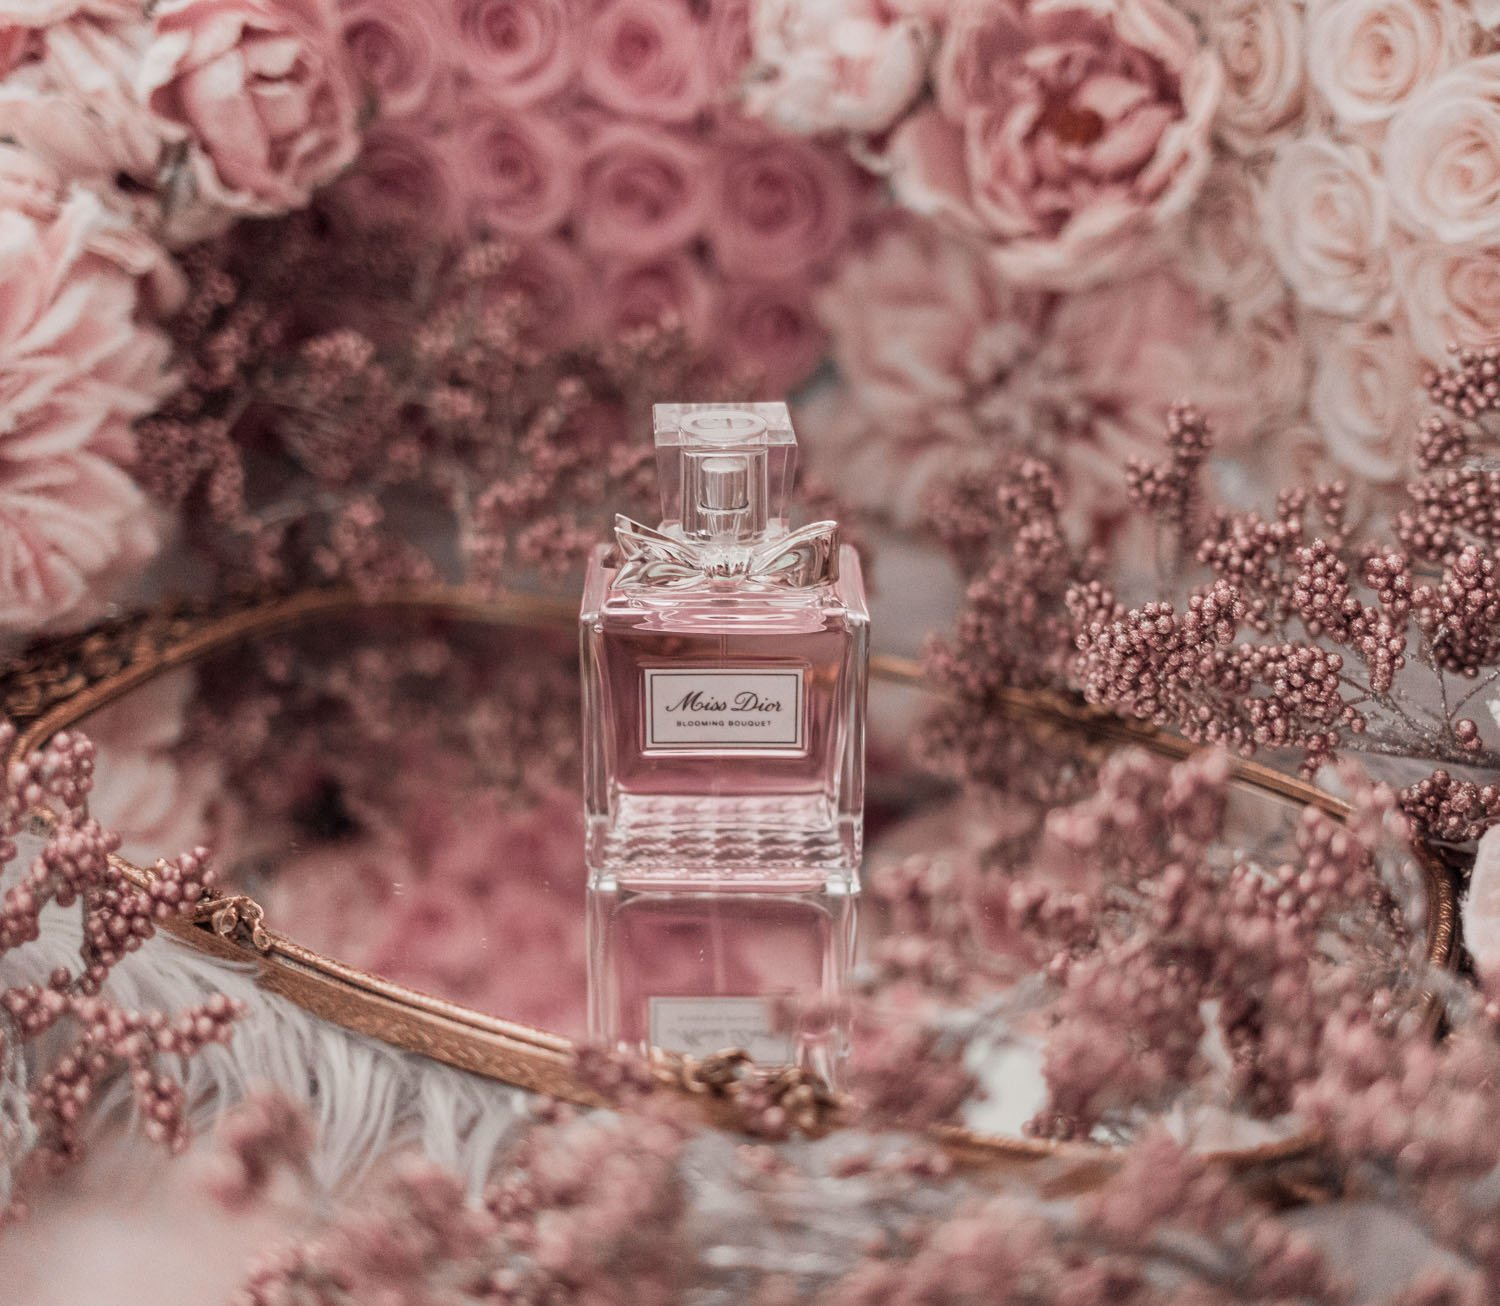 Feminine fashion blogger Elizabeth Hugen of Lizzie in Lace shares the best feminine perfumes and her girly fragrance collection including Dior Miss Dior Blooming Bouquet